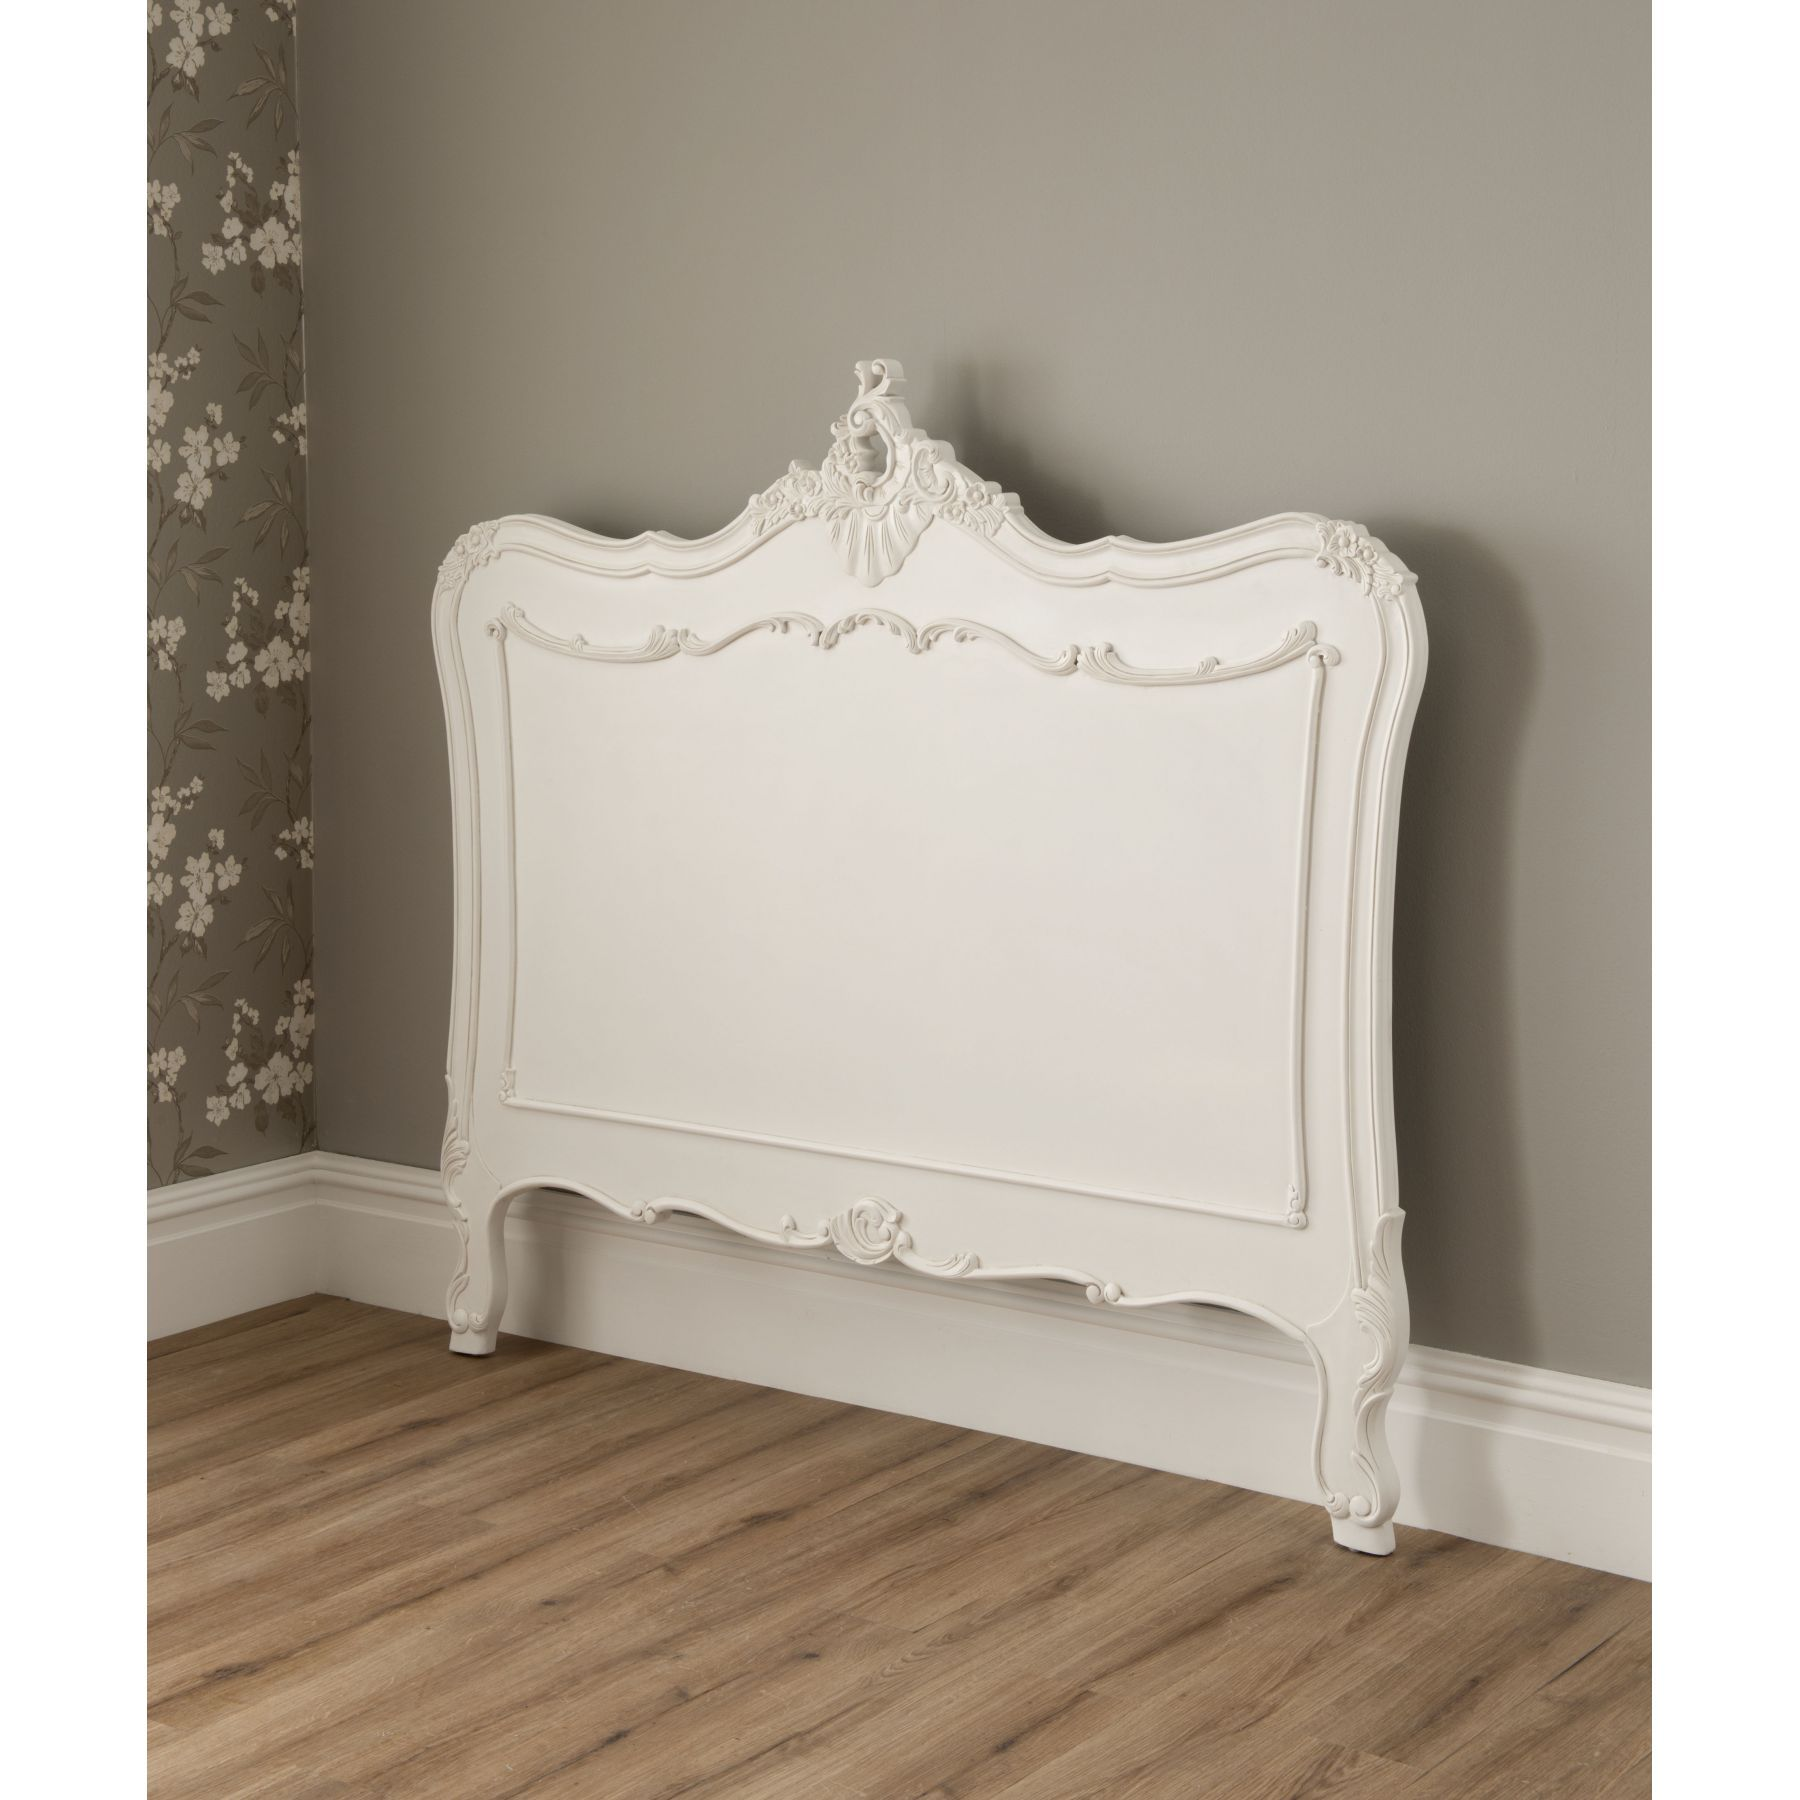 Shabby Chic Headboard Shabby Chic French Style Beds Bedrooms French Country Bedroom